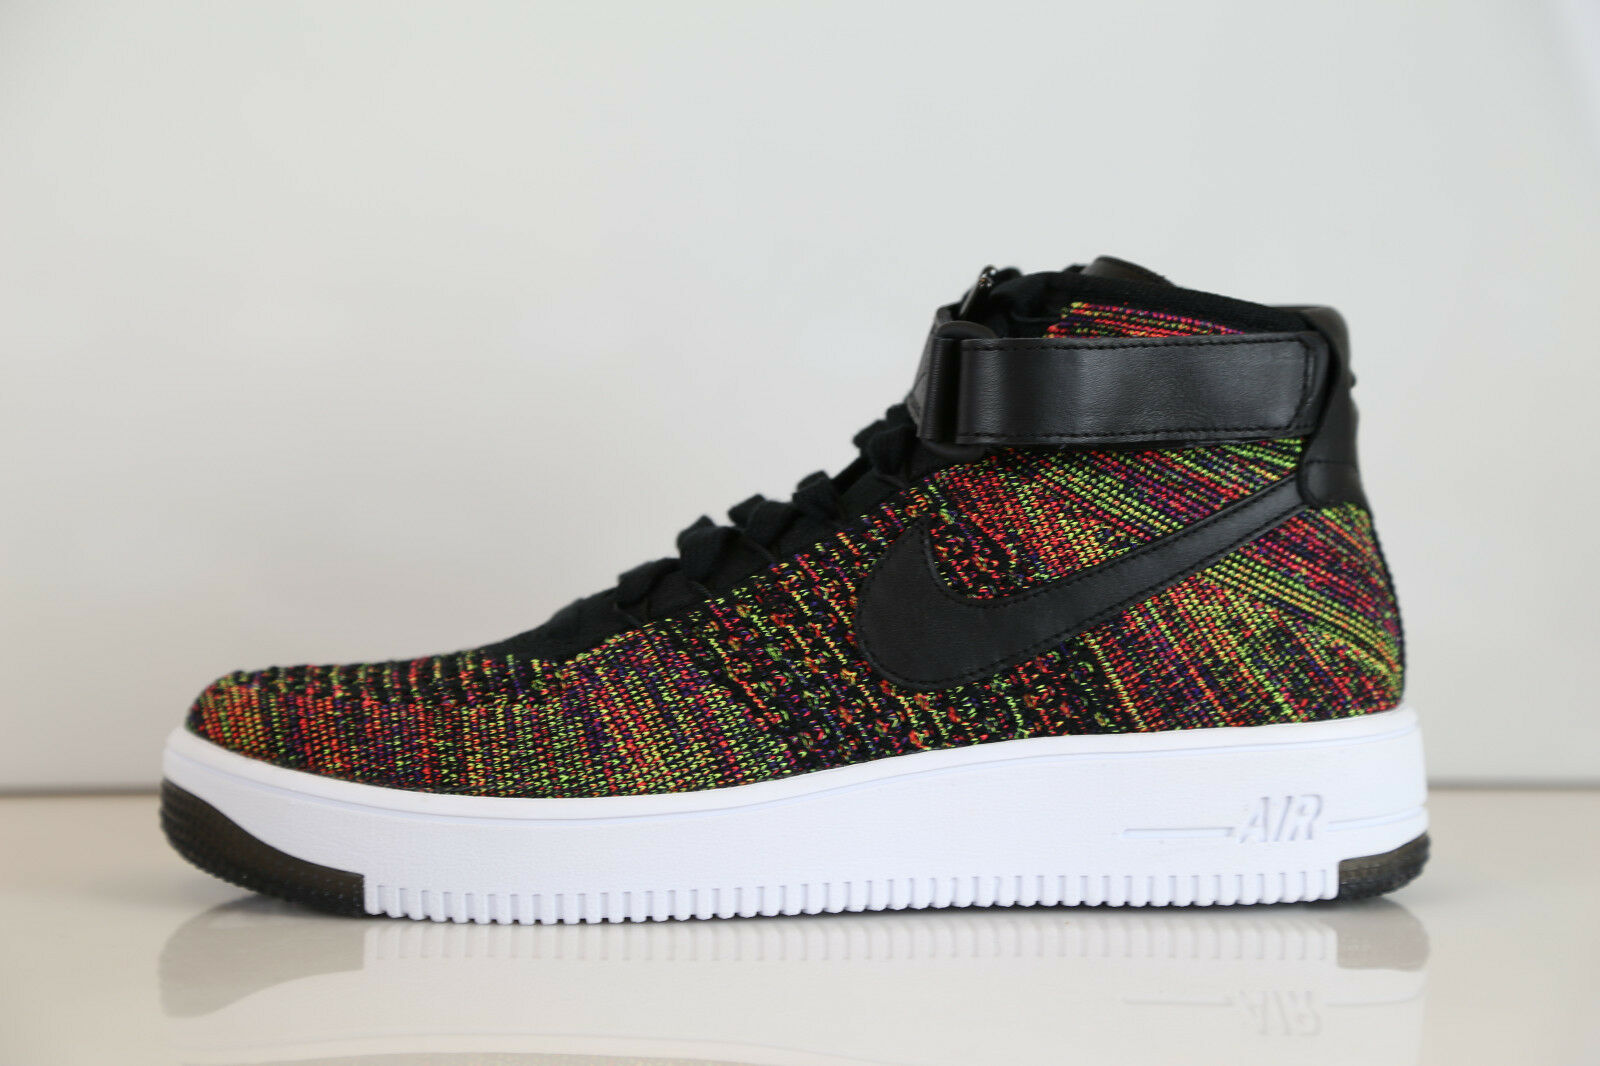 Nike AF1 Ultra Flyknit Mid Multicolor 817420-002 10.5 air force 1